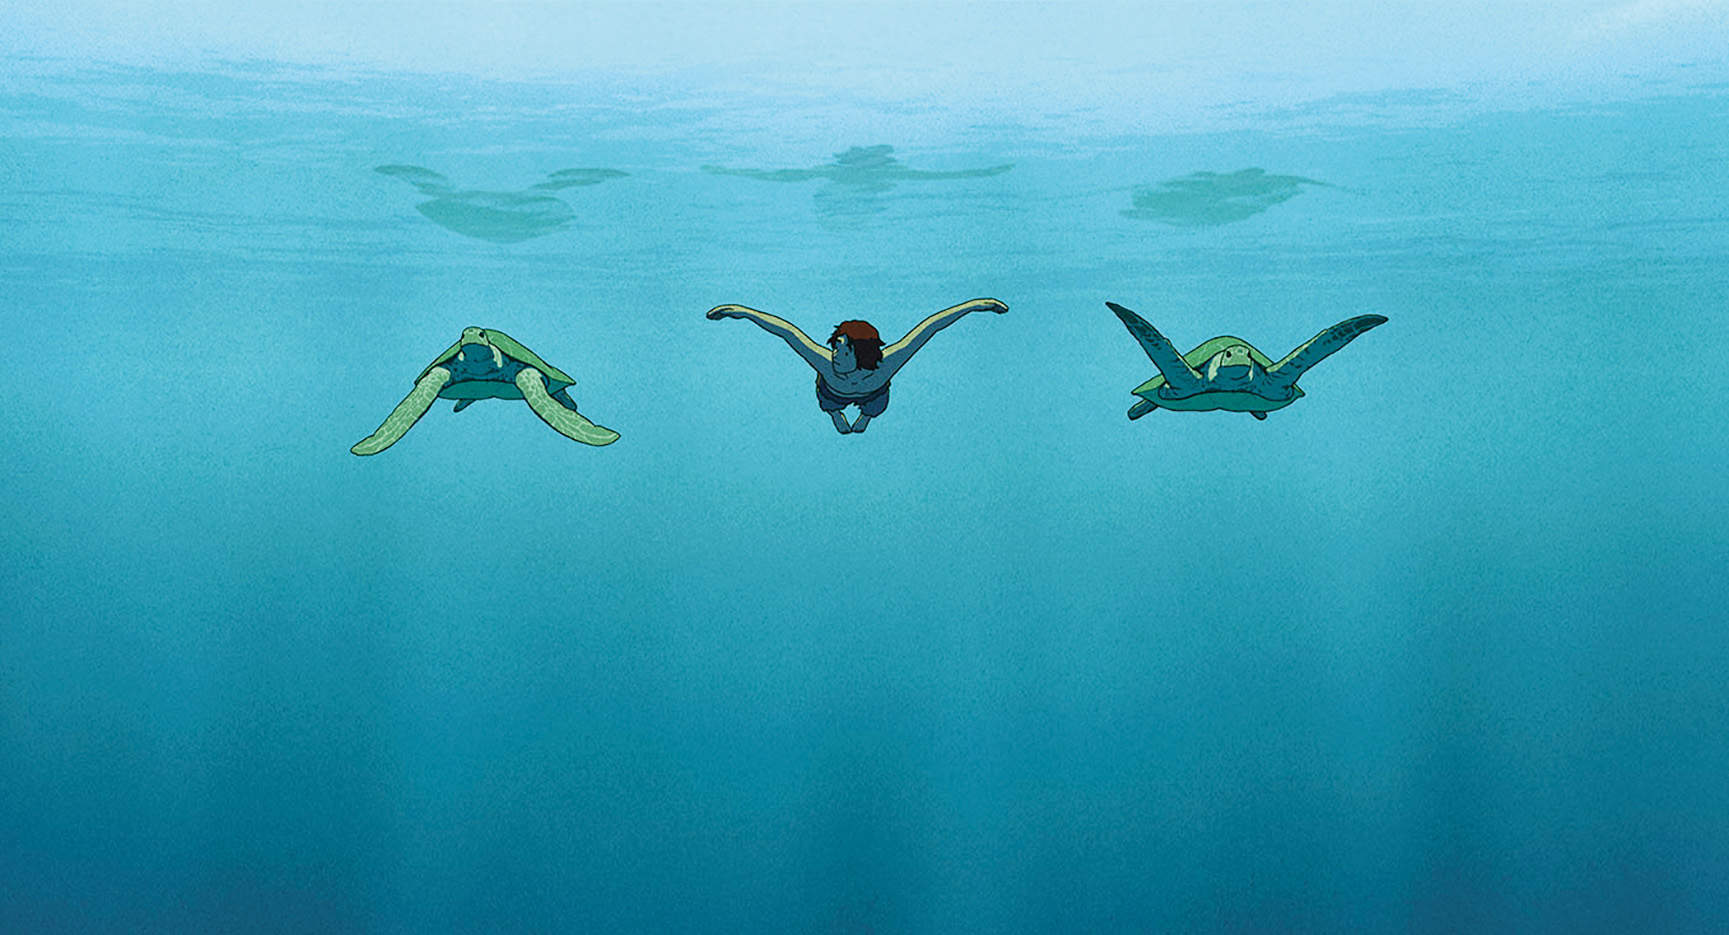 The Red Turtle and My Life As a Courgette: Oscar nominated animations with very different charms